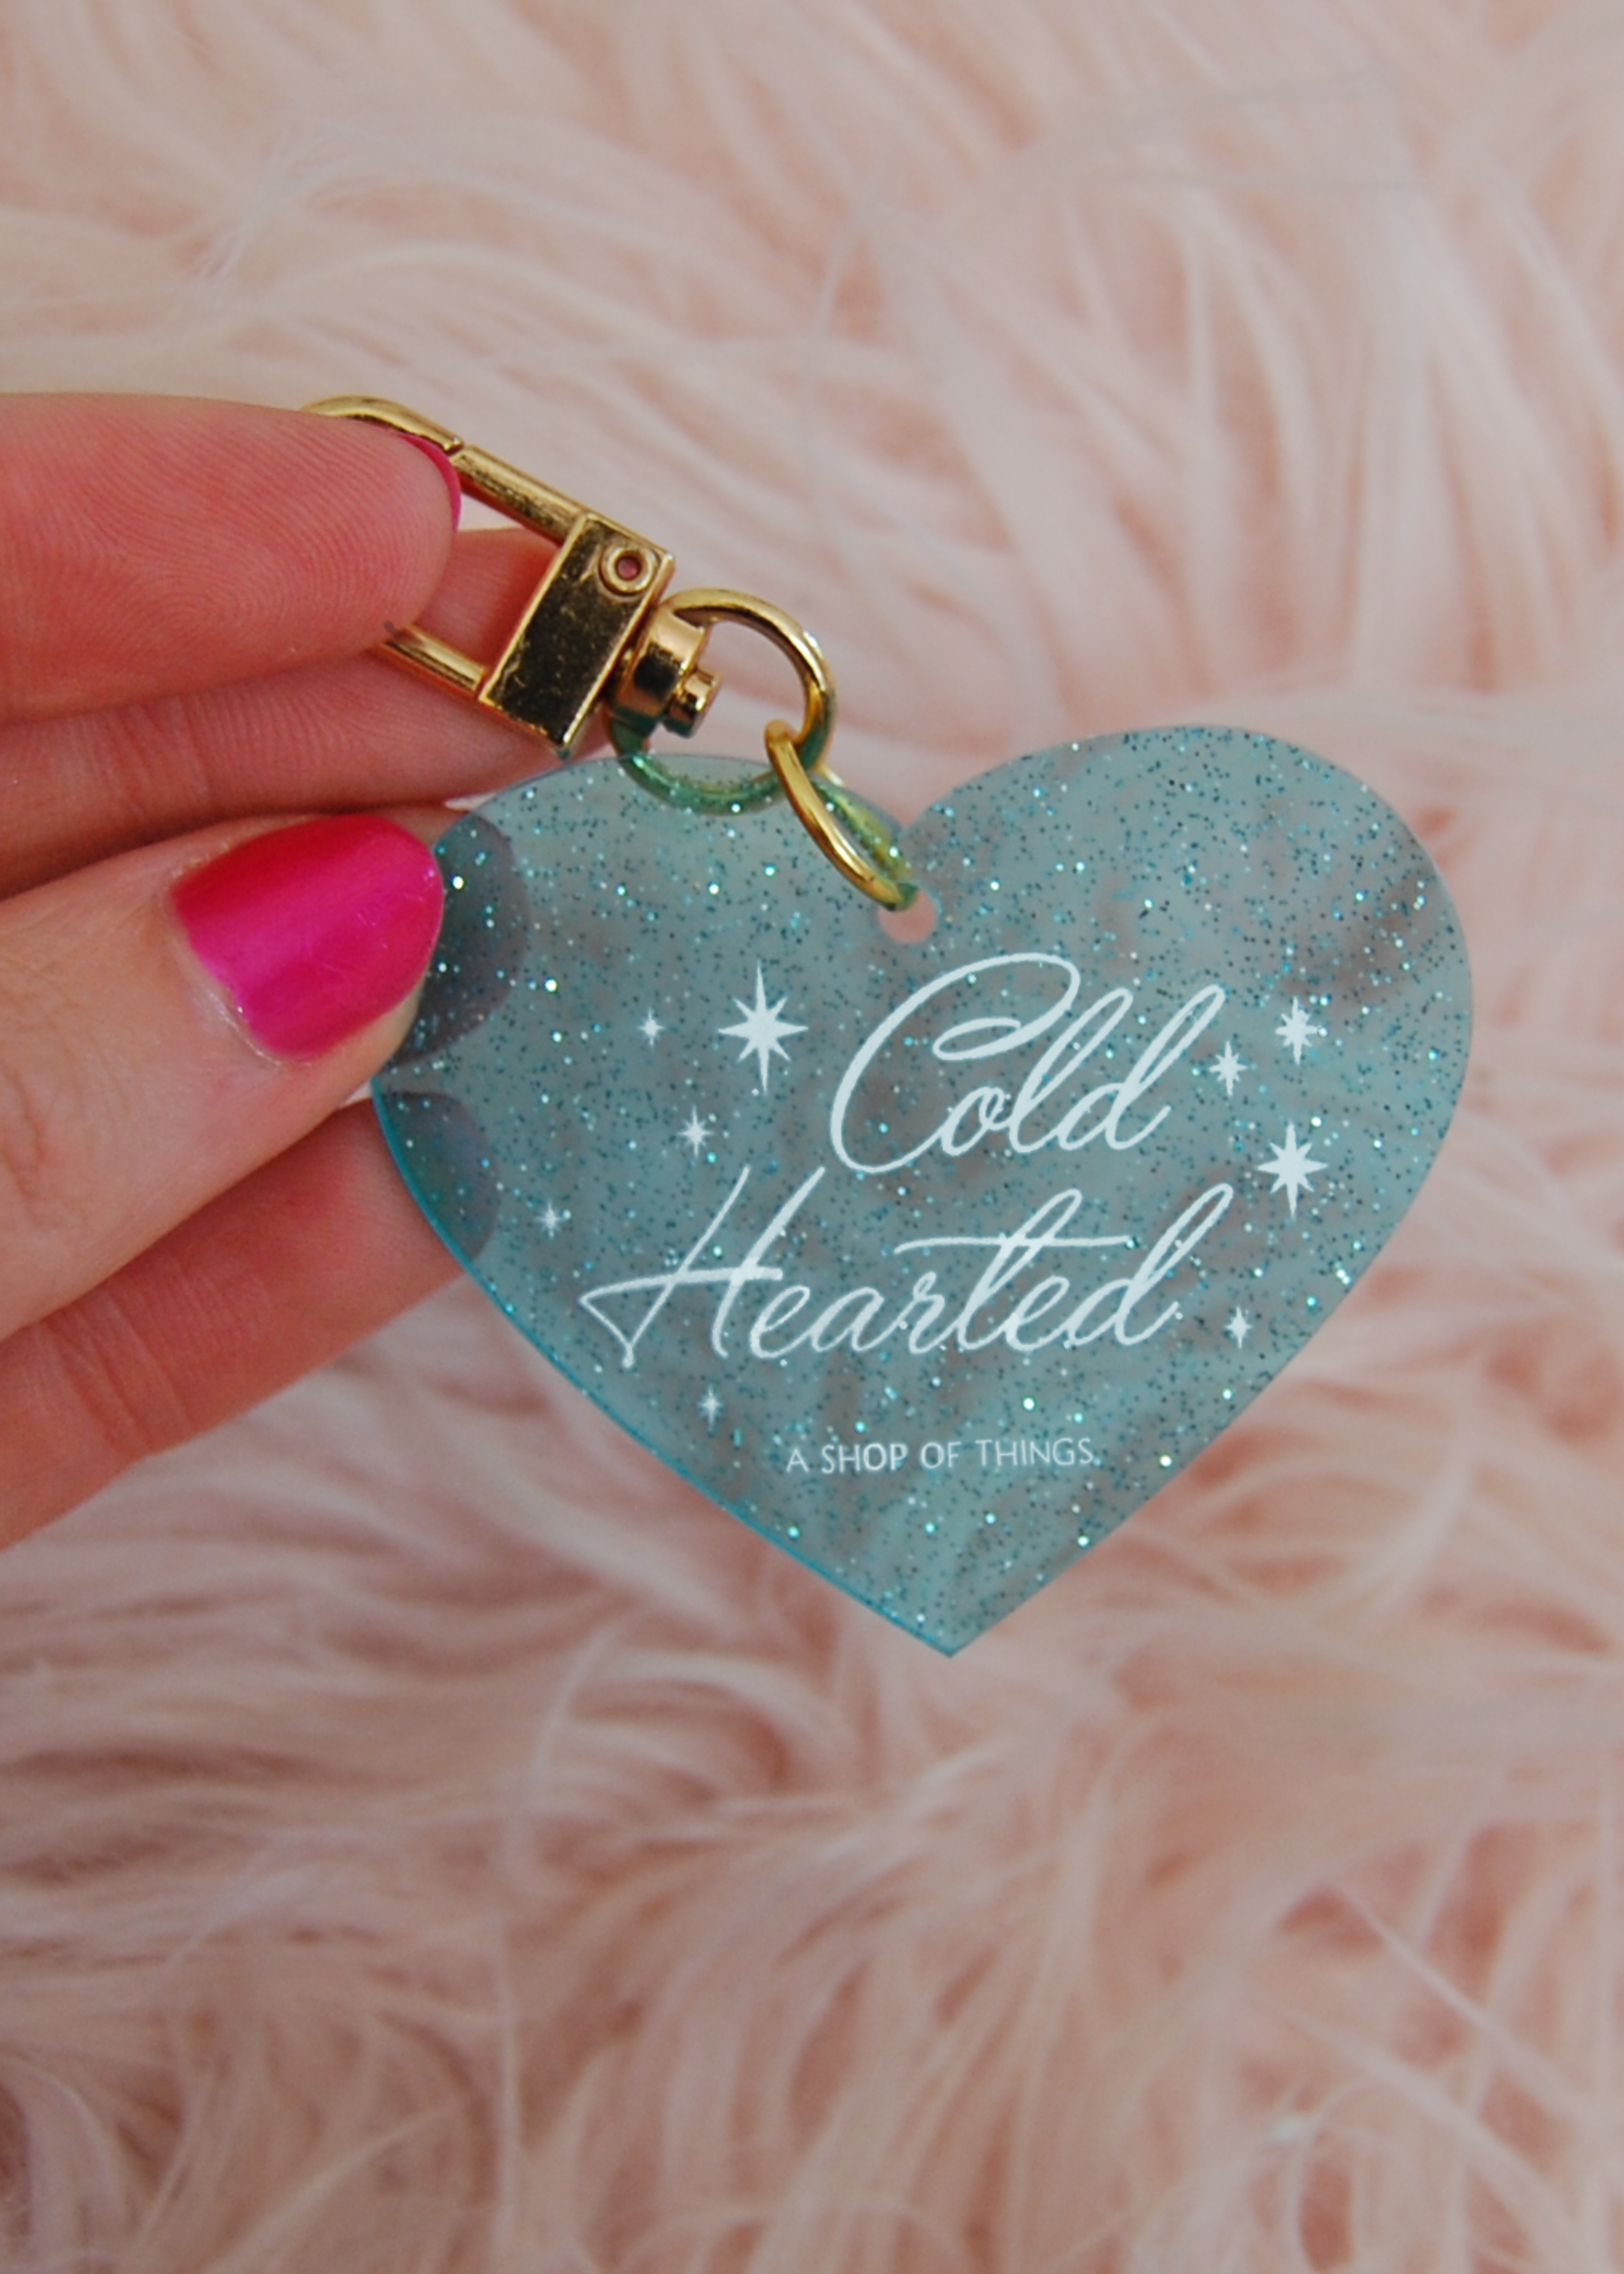 A SHOP OF THINGS COLD HEARTED GLITTER KEYCHAIN